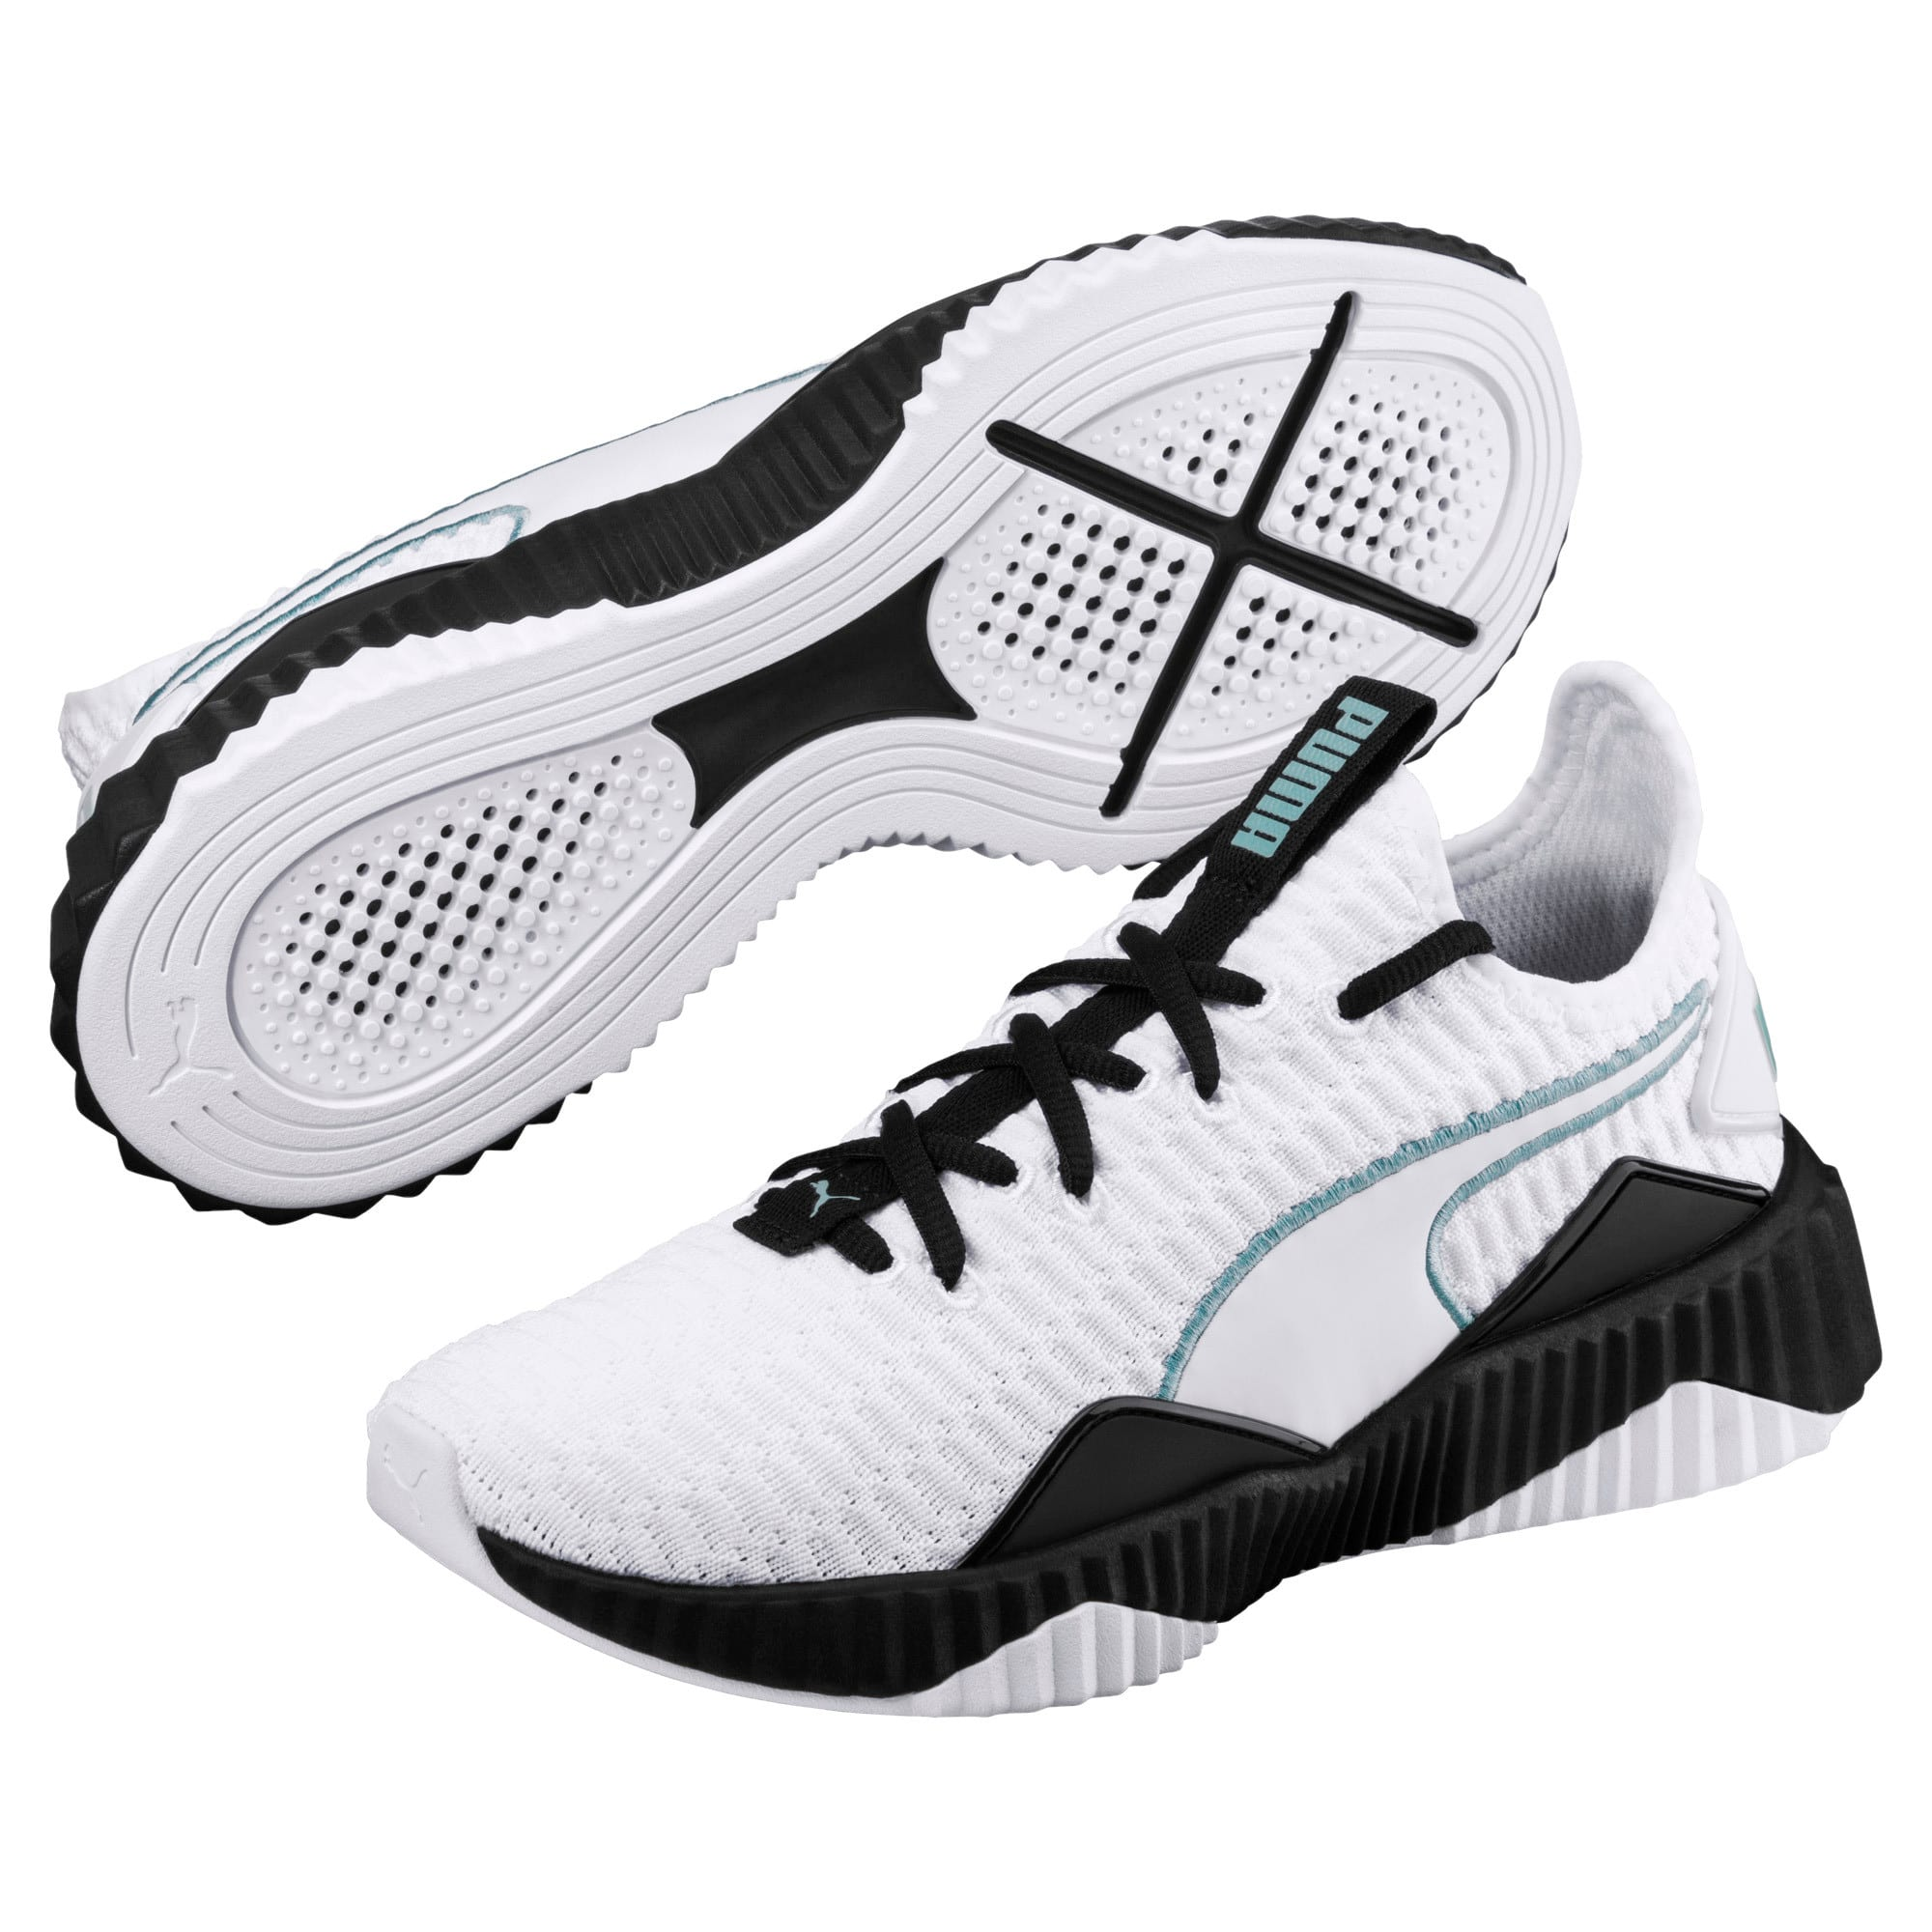 Thumbnail 2 of Defy Women's Training Shoes, Puma White-Puma Black, medium